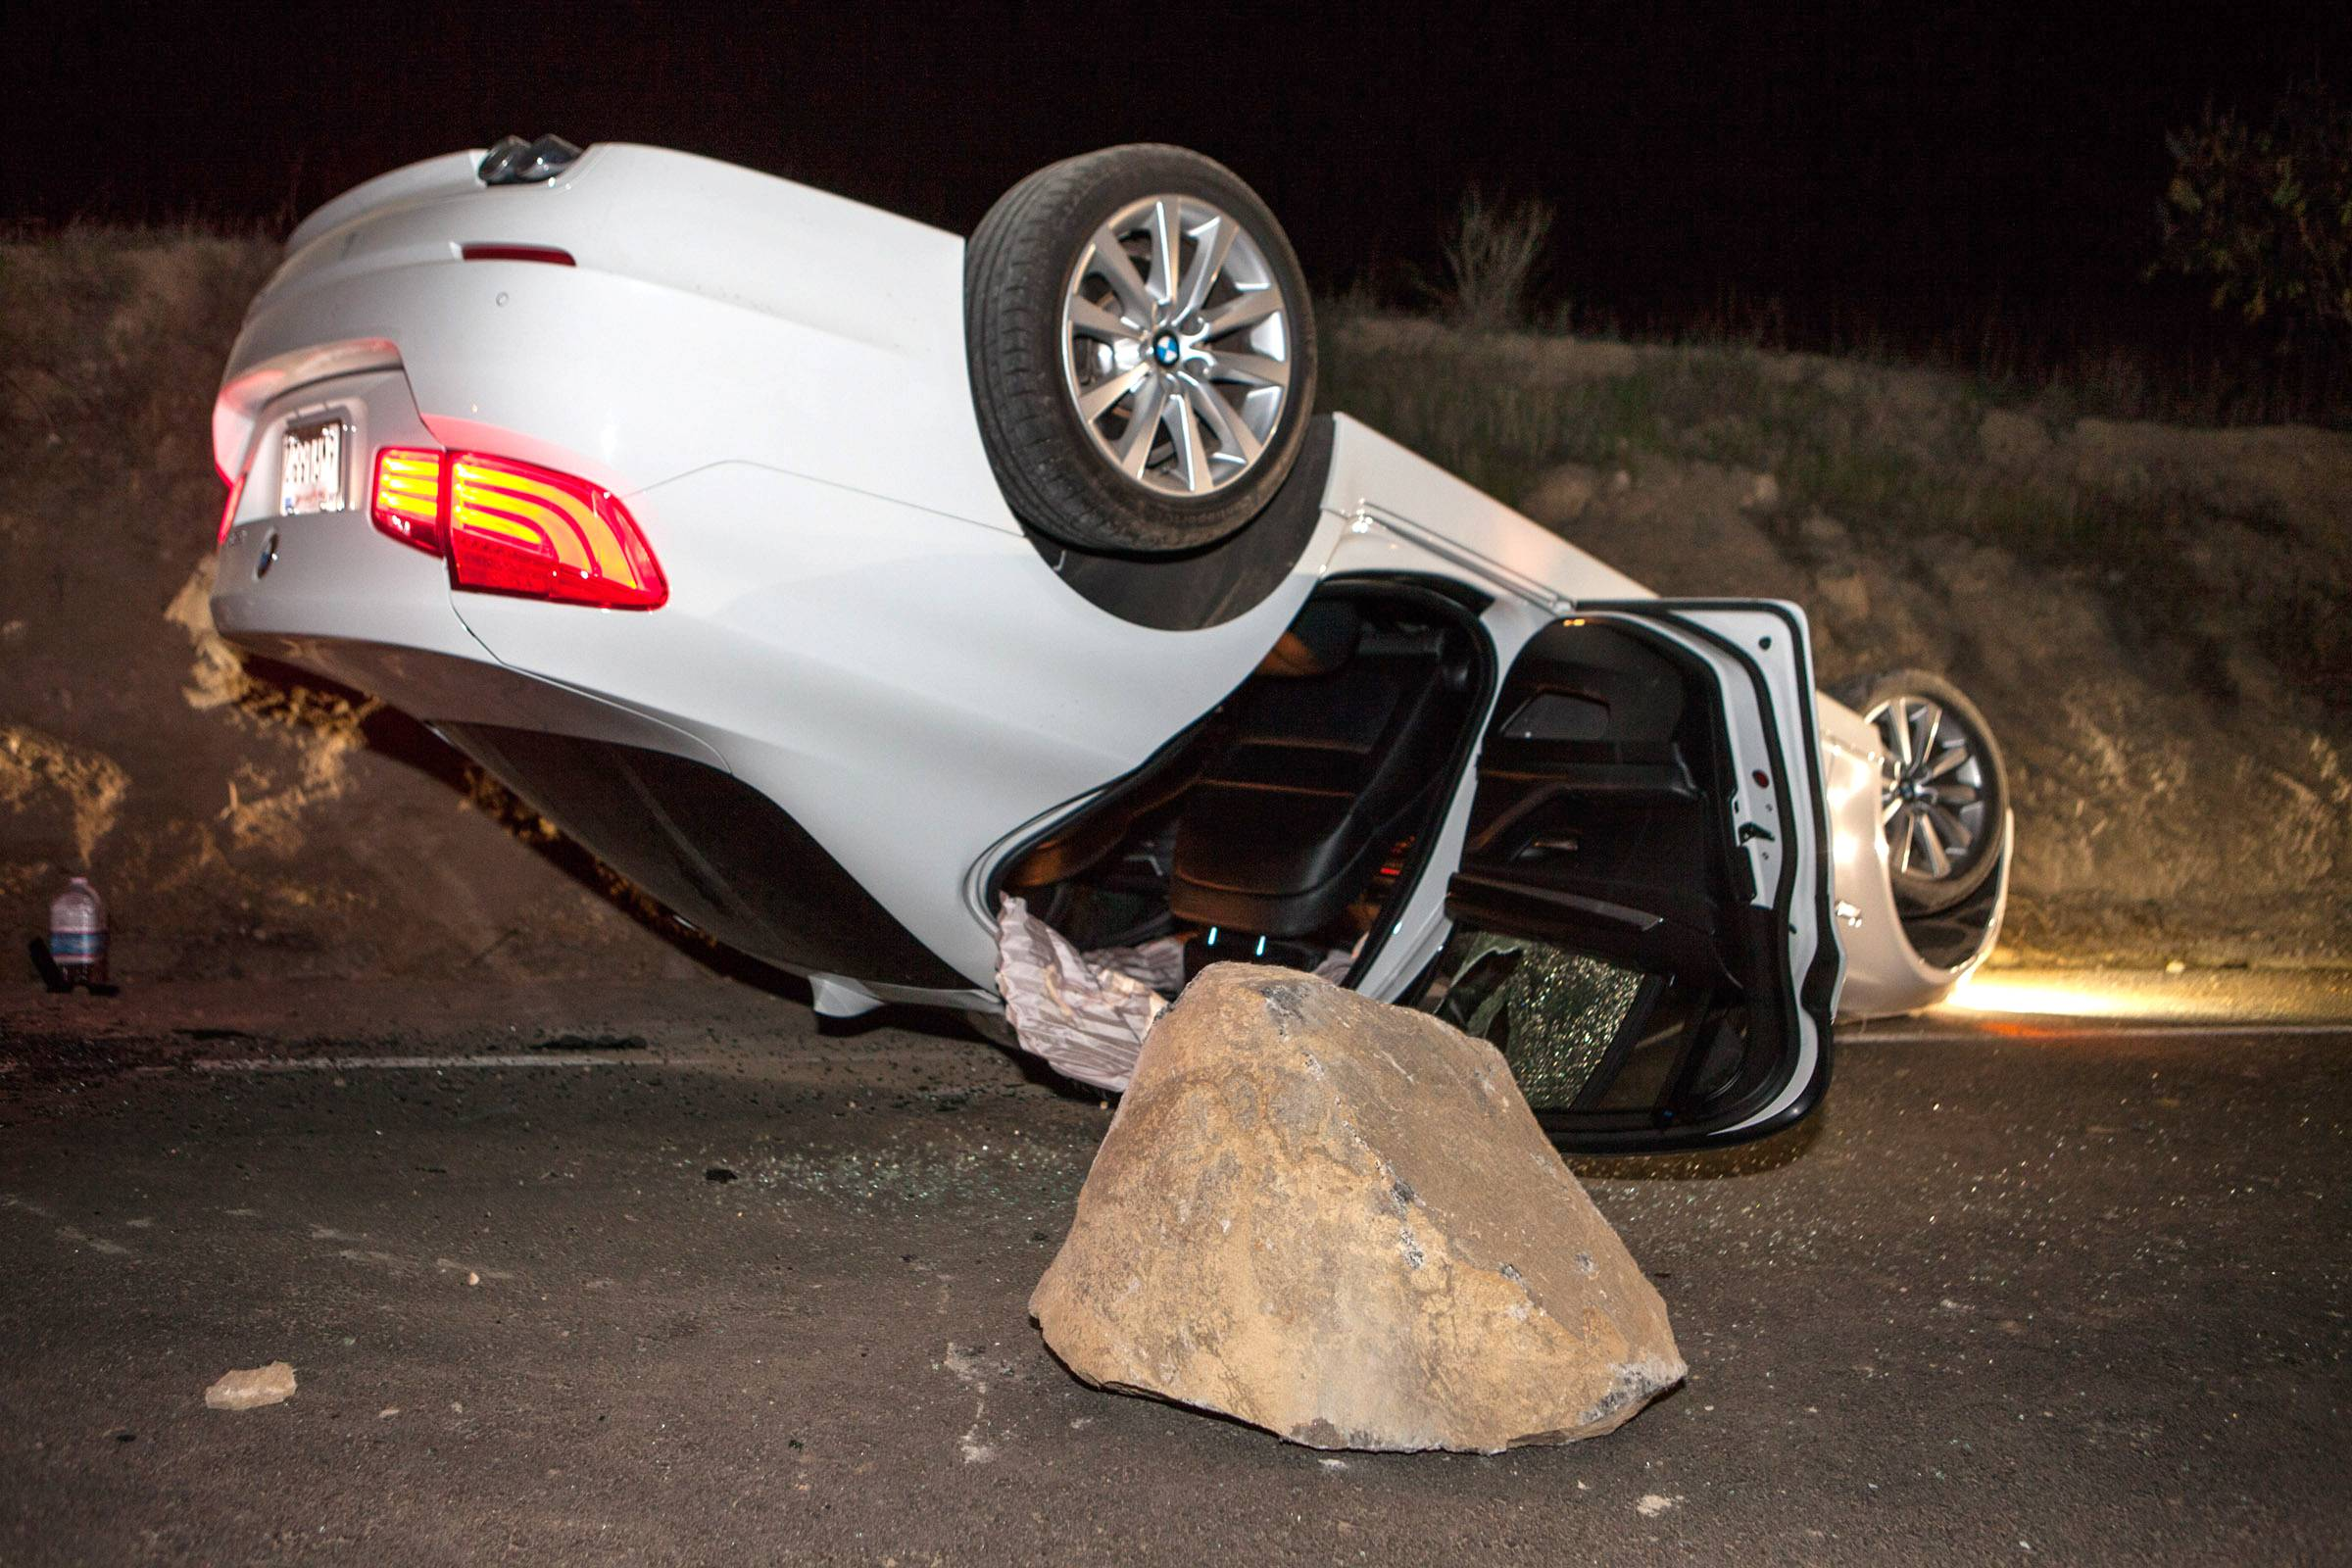 A car sits overturned on a highway in the Carbon Canyon area of Brea, Calif., Friday night, March 28, after hitting a rock slide caused by an earthquake. The people inside the car sustained minor injuries. A magnitude-5.1 earthquake centered in the area near Los Angeles caused no major damage but jittered nerves throughout the region as dozens of aftershocks struck into the night.